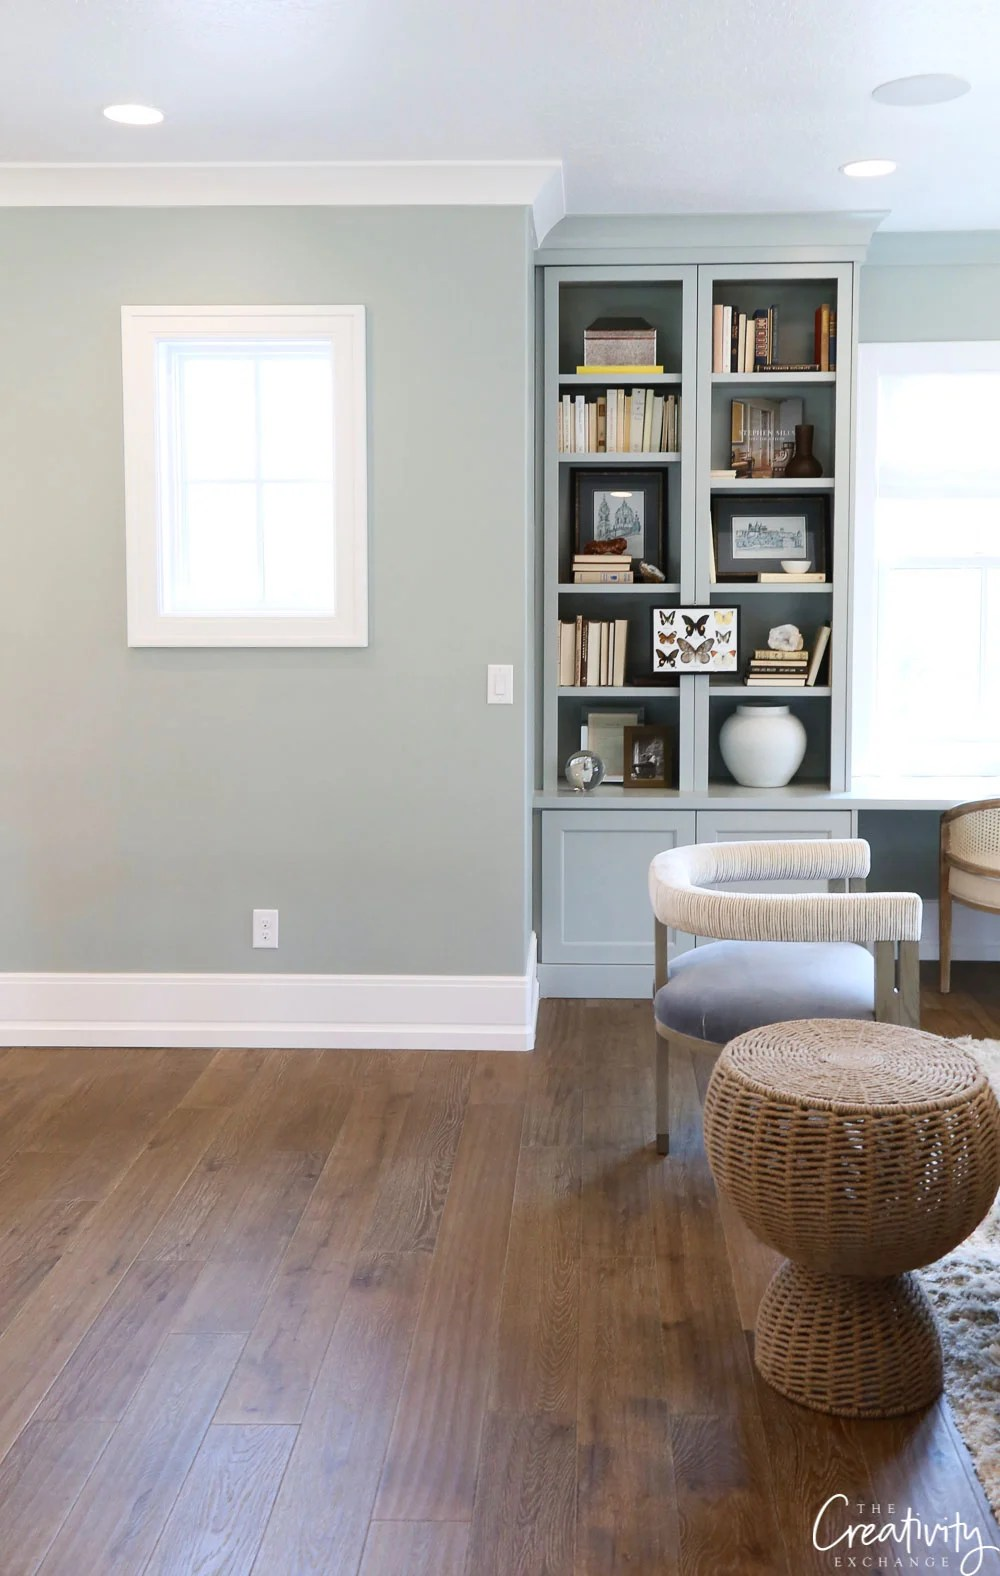 living room paint colors 2019 choices for color trends and forecasts wall cabinetry is sherwin williams oyster bay